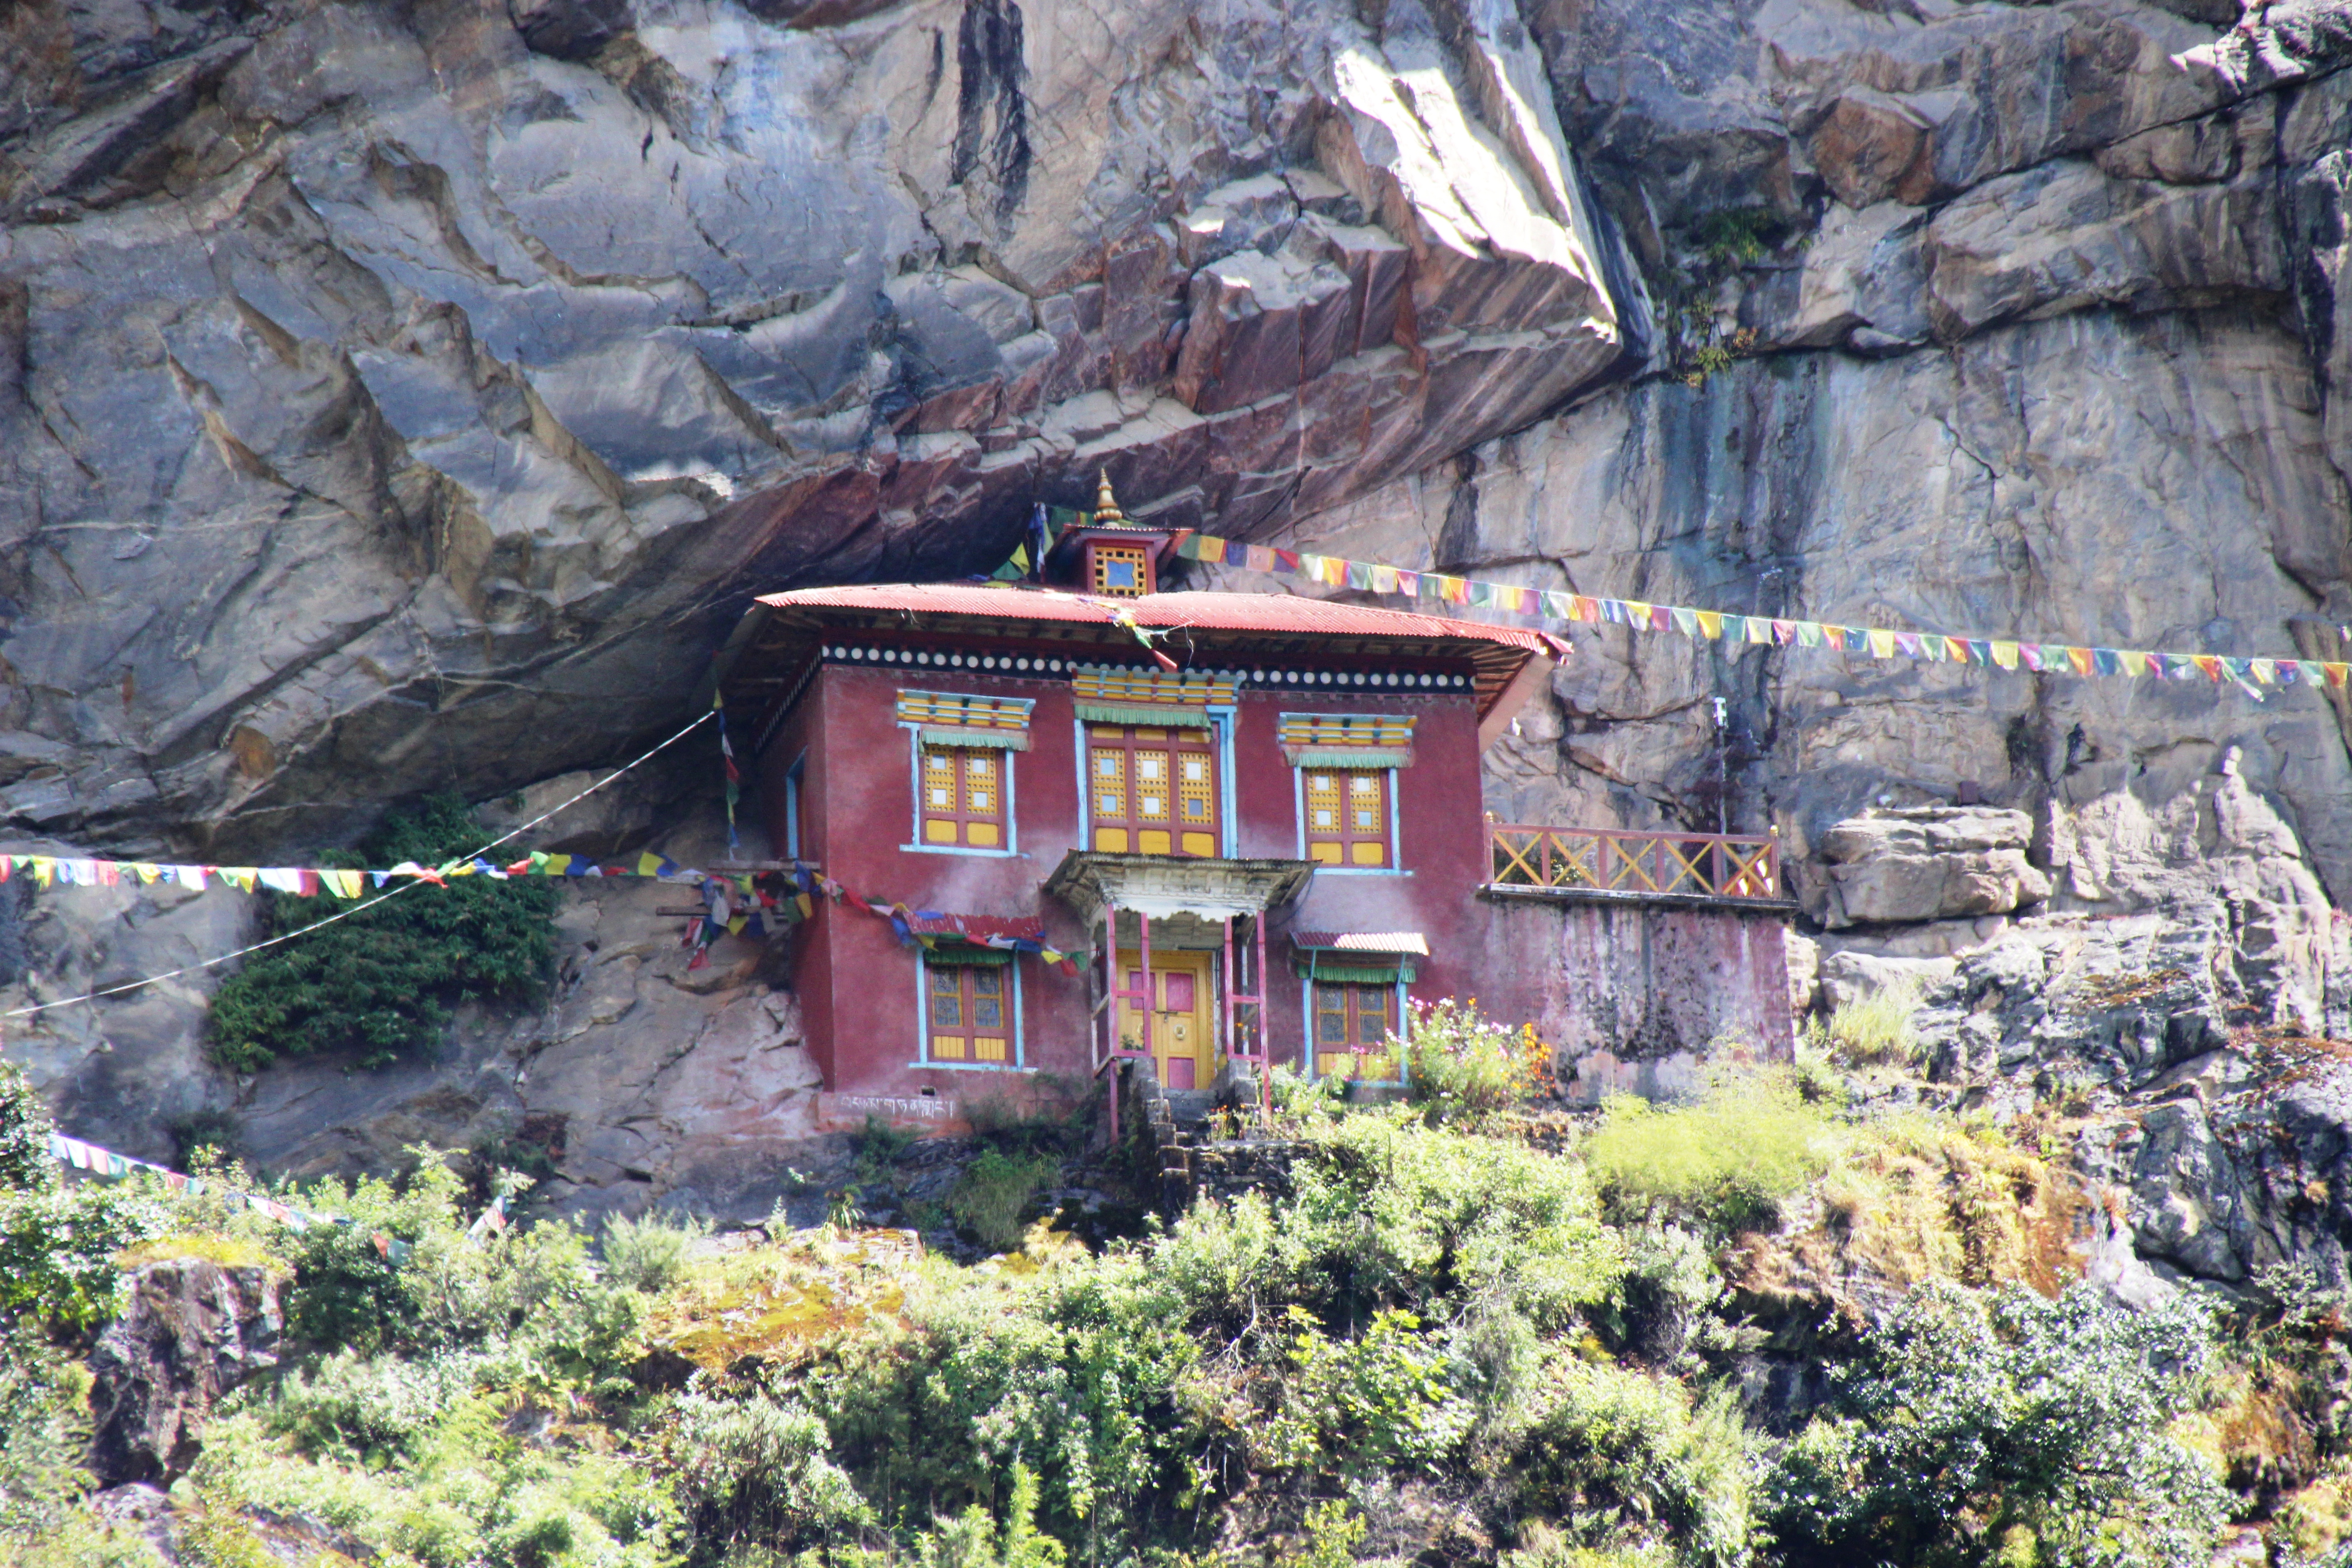 House in Cliff - Close Up